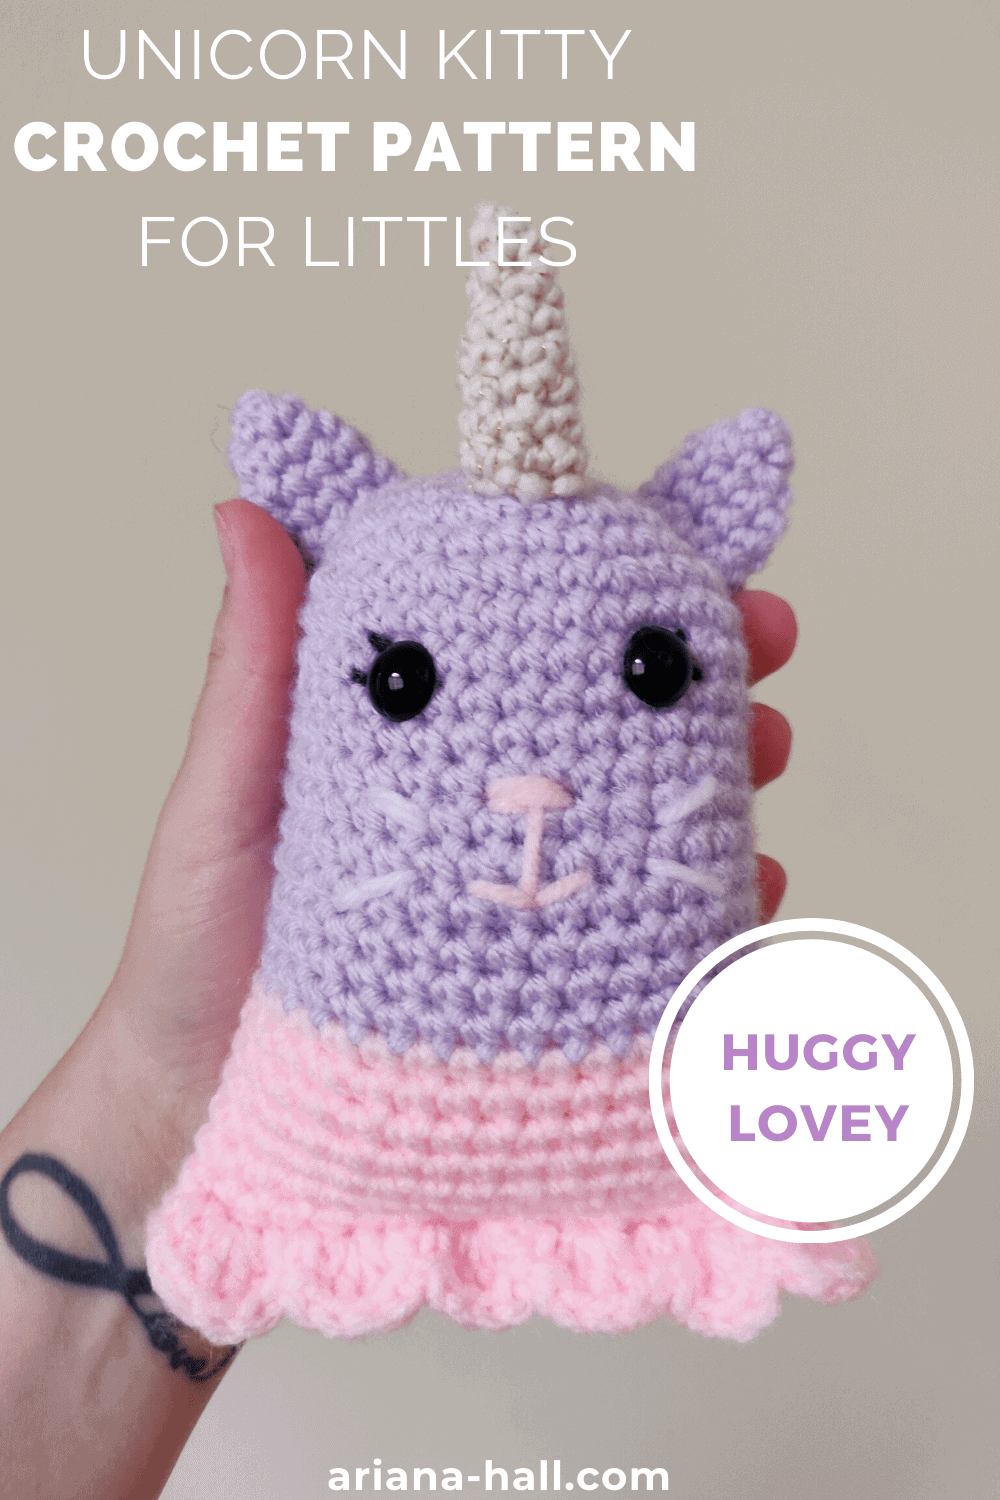 A pink and purple crochet unicorn kitty.